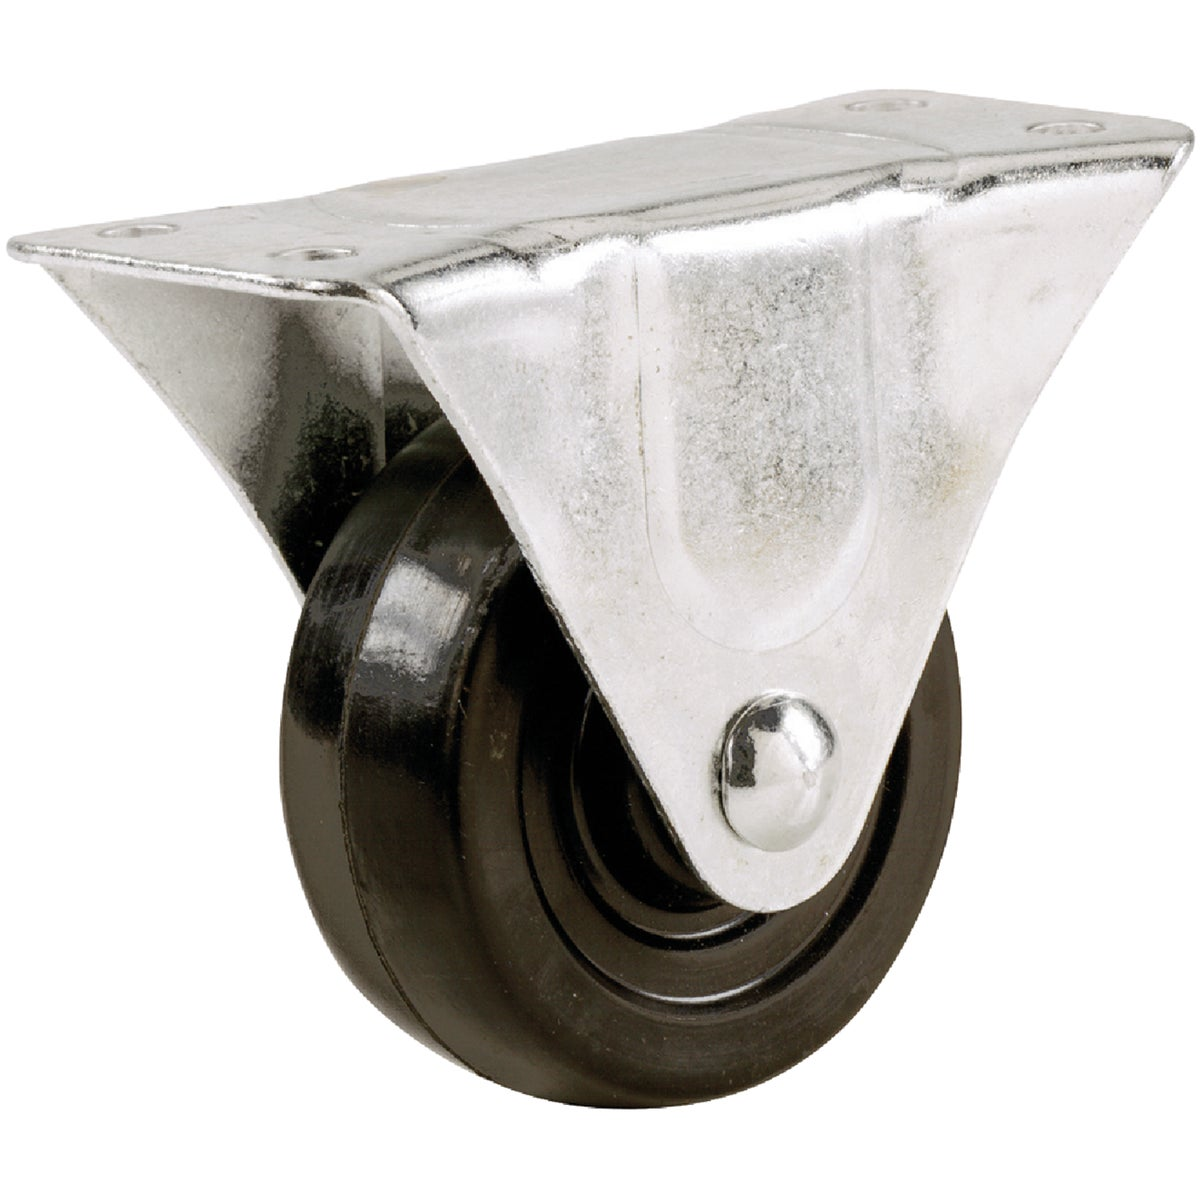 "2-1/2"" RUBBER RIG CASTER - 9482 by Shepherd Hardware"